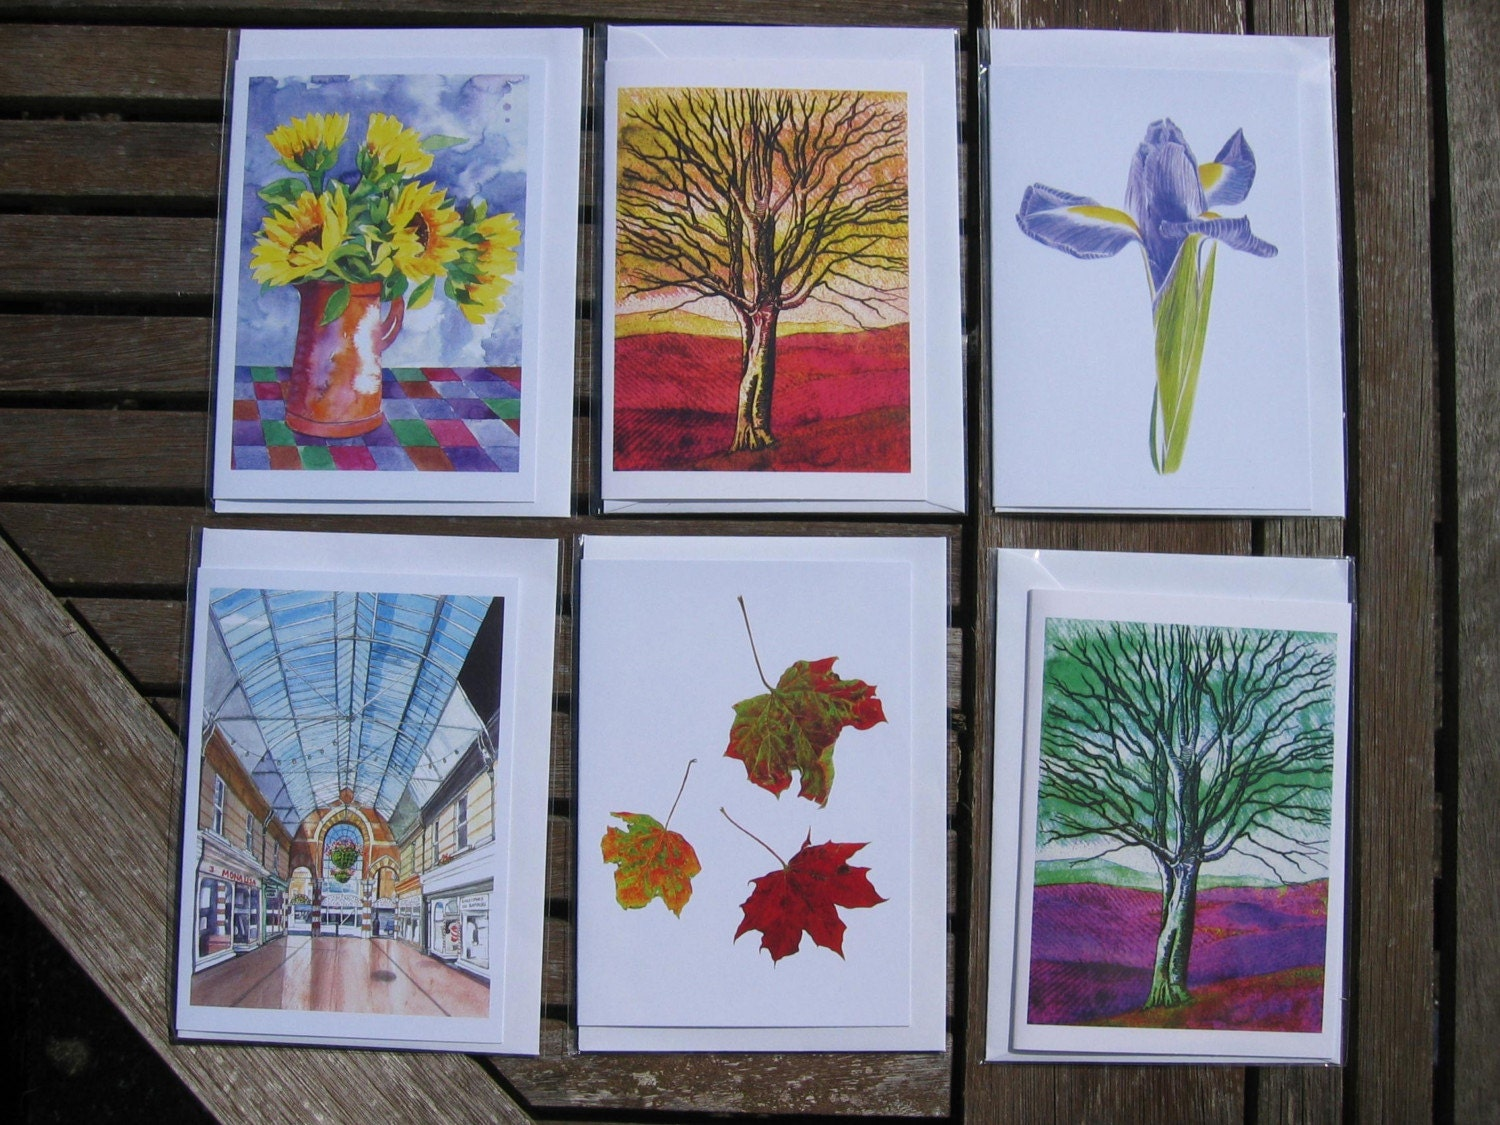 10 Greetings Cards from my Original Watercolours and/or Digital Artwork